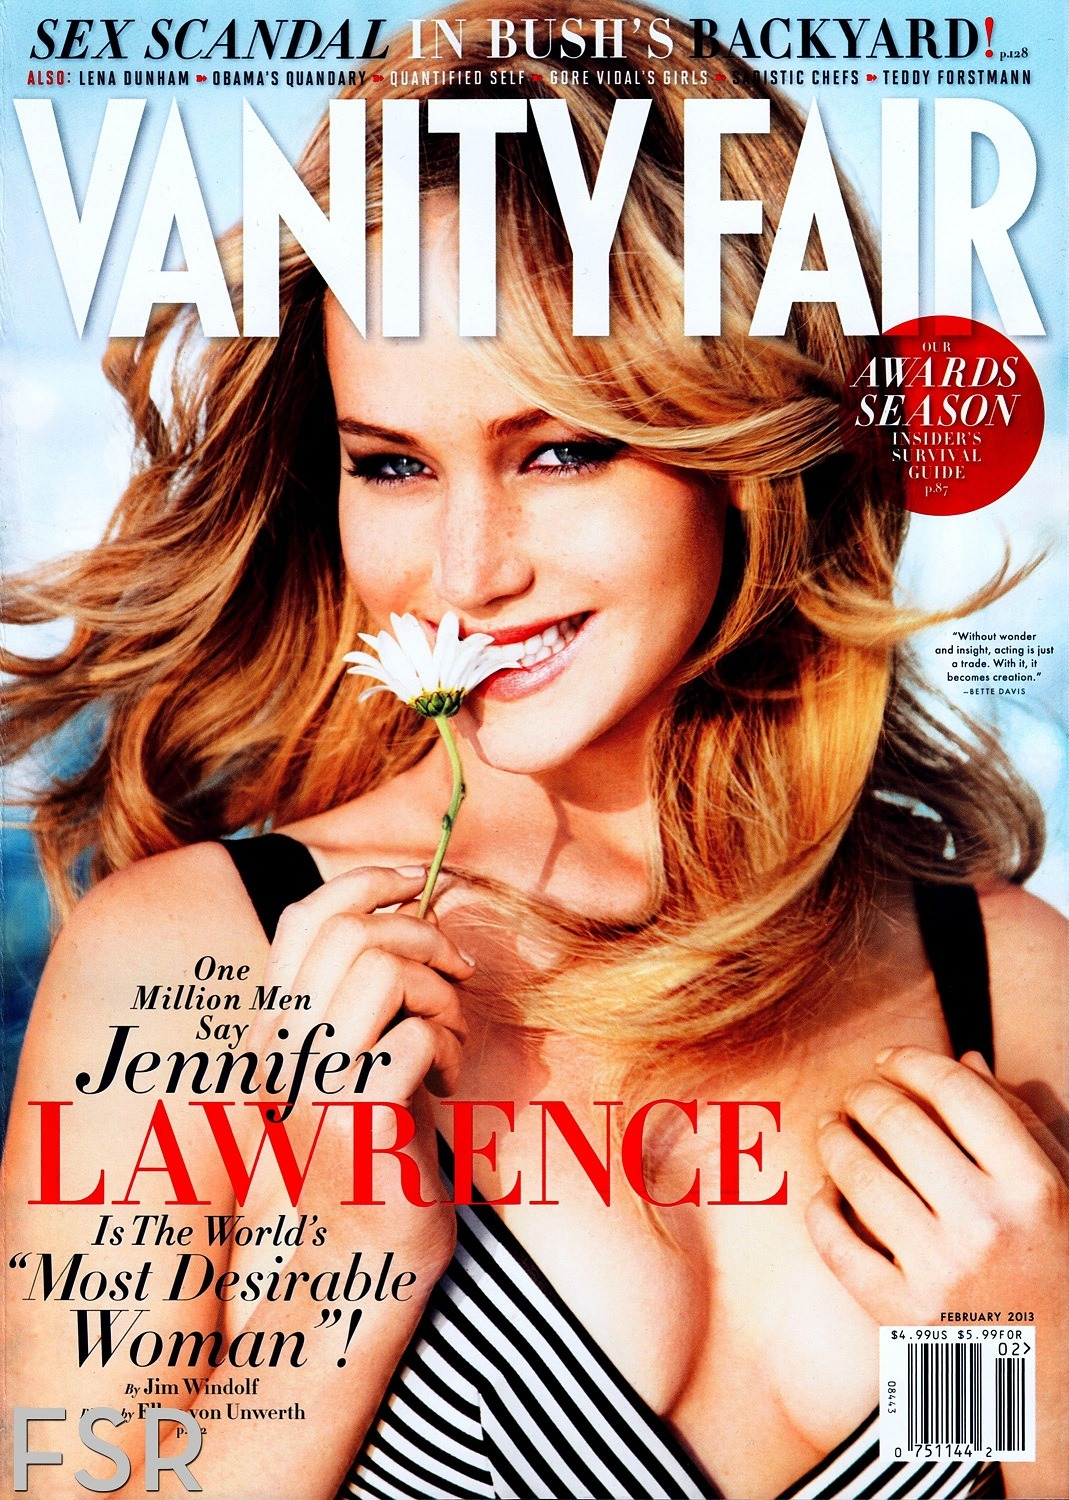 he loves me. Jennifer Lawrence in Oscar on the cover of @vanityfair